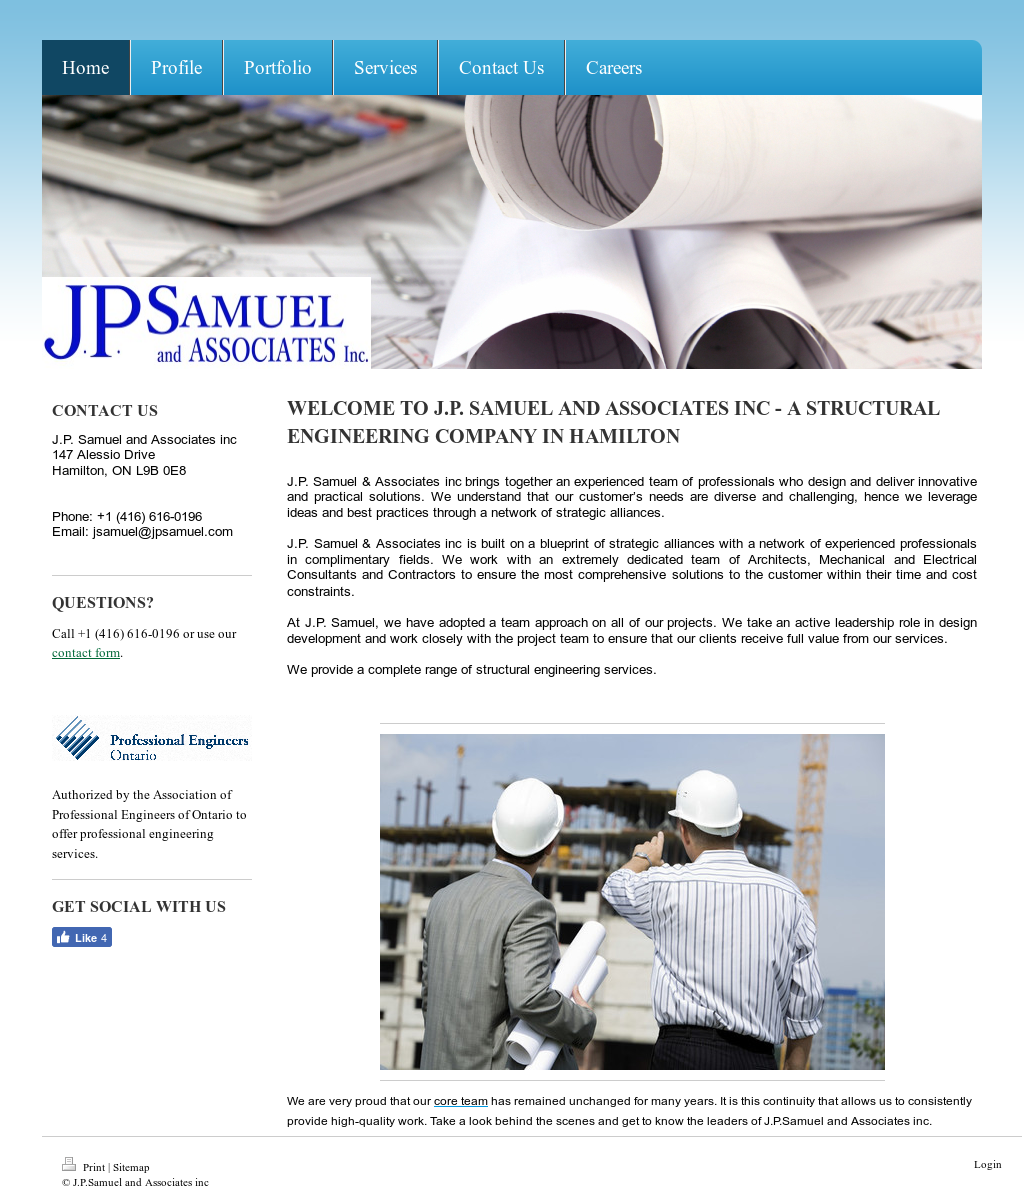 J p samuel And Associates Competitors, Revenue and Employees - Owler